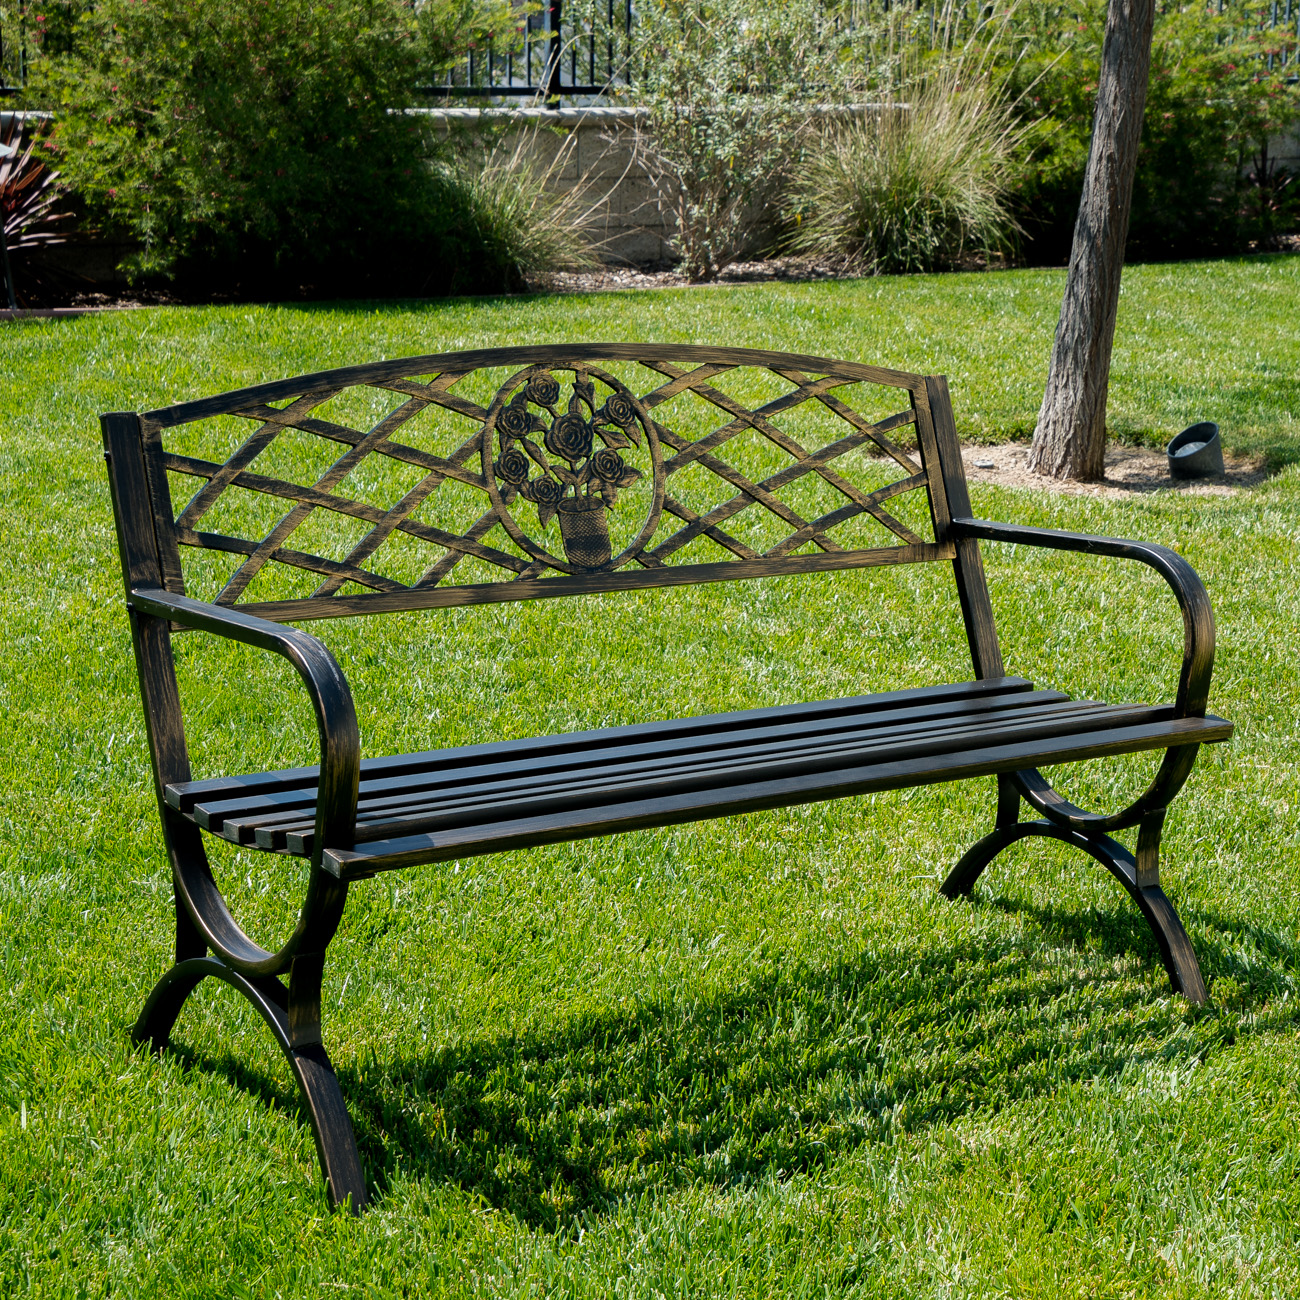 Outdoor bench patio chair metal garden furniture deck Garden benches metal